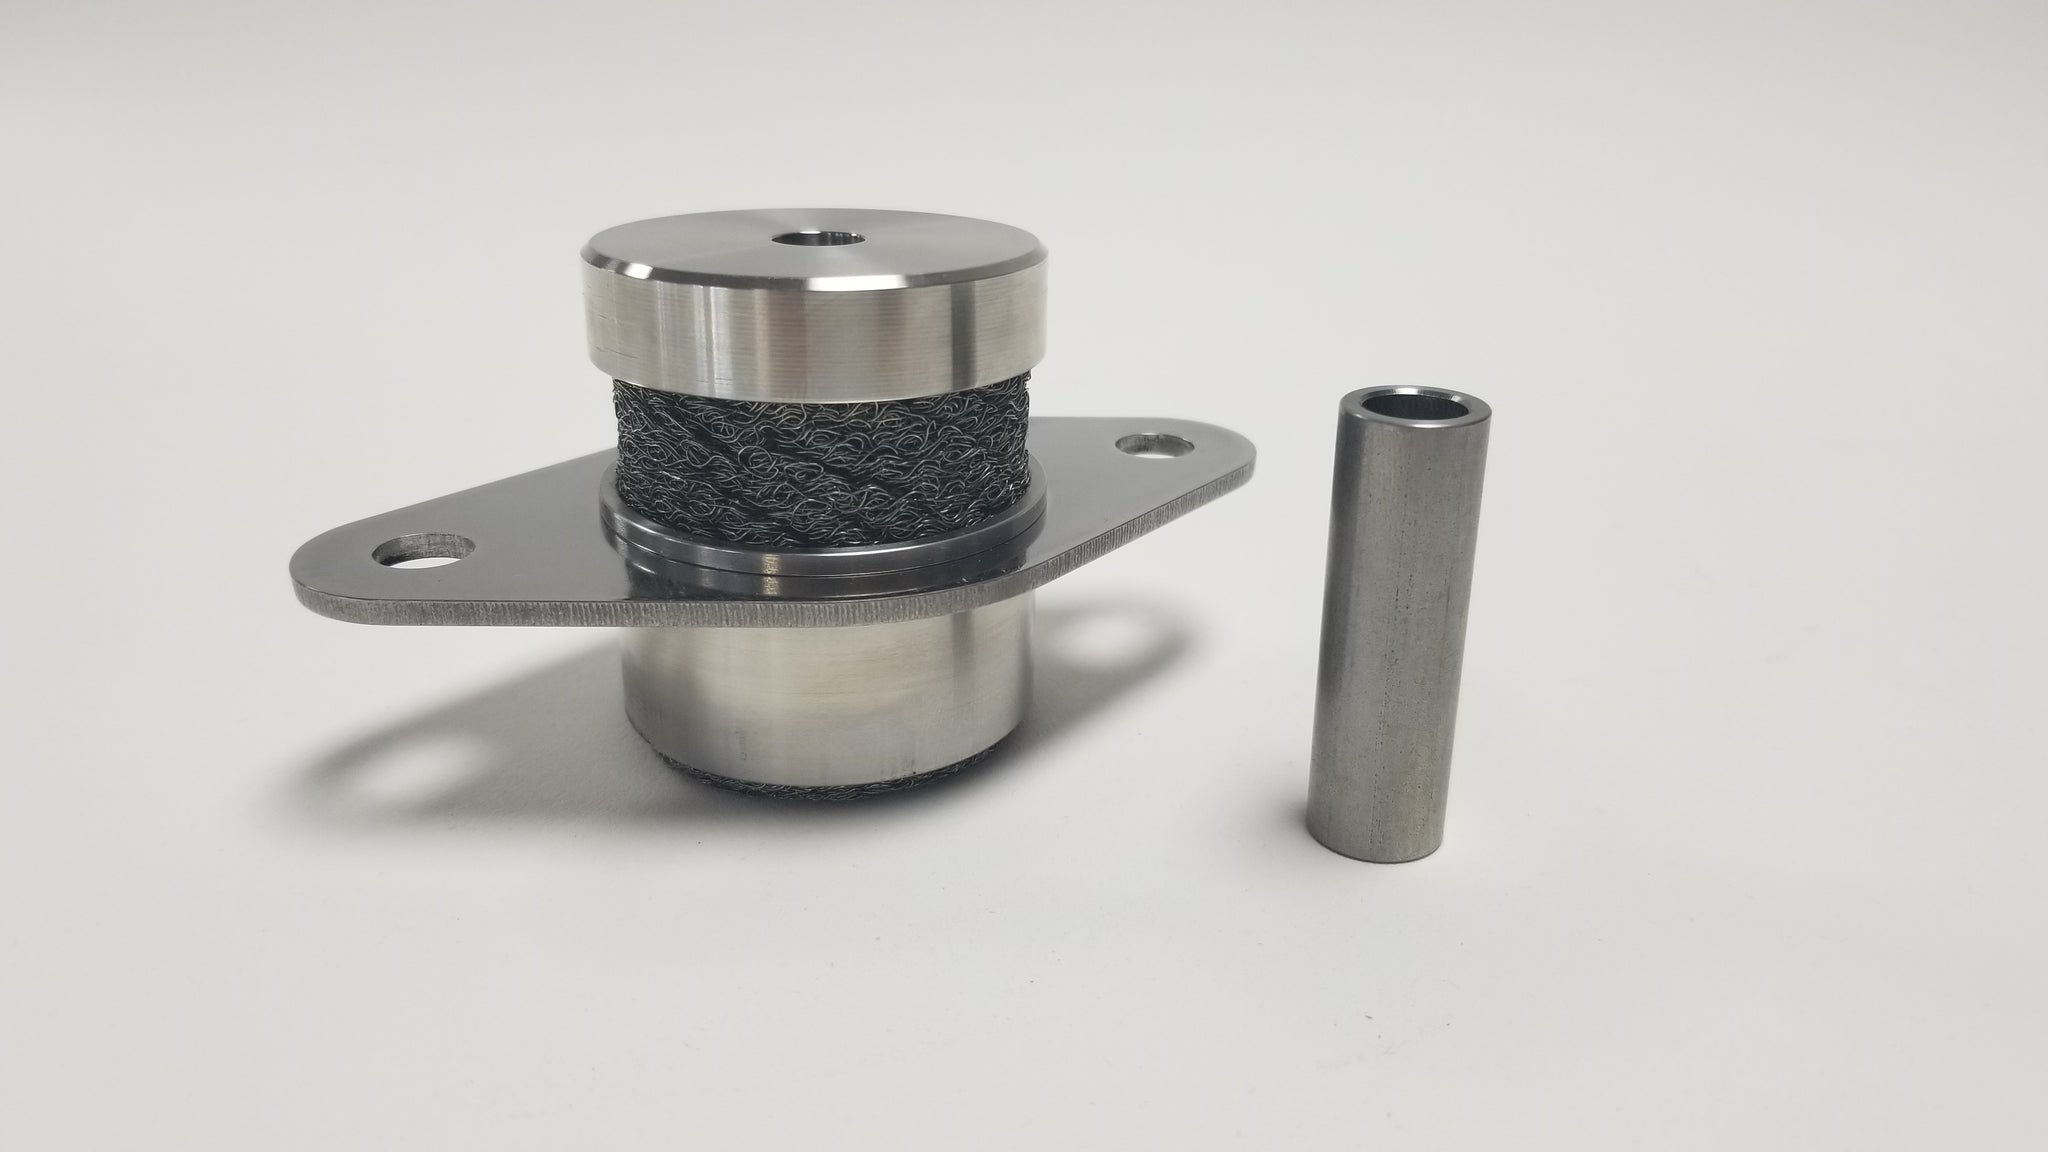 FRONT MOTOR MOUNT BY KINETIC STRUCTURES - FXR / FL